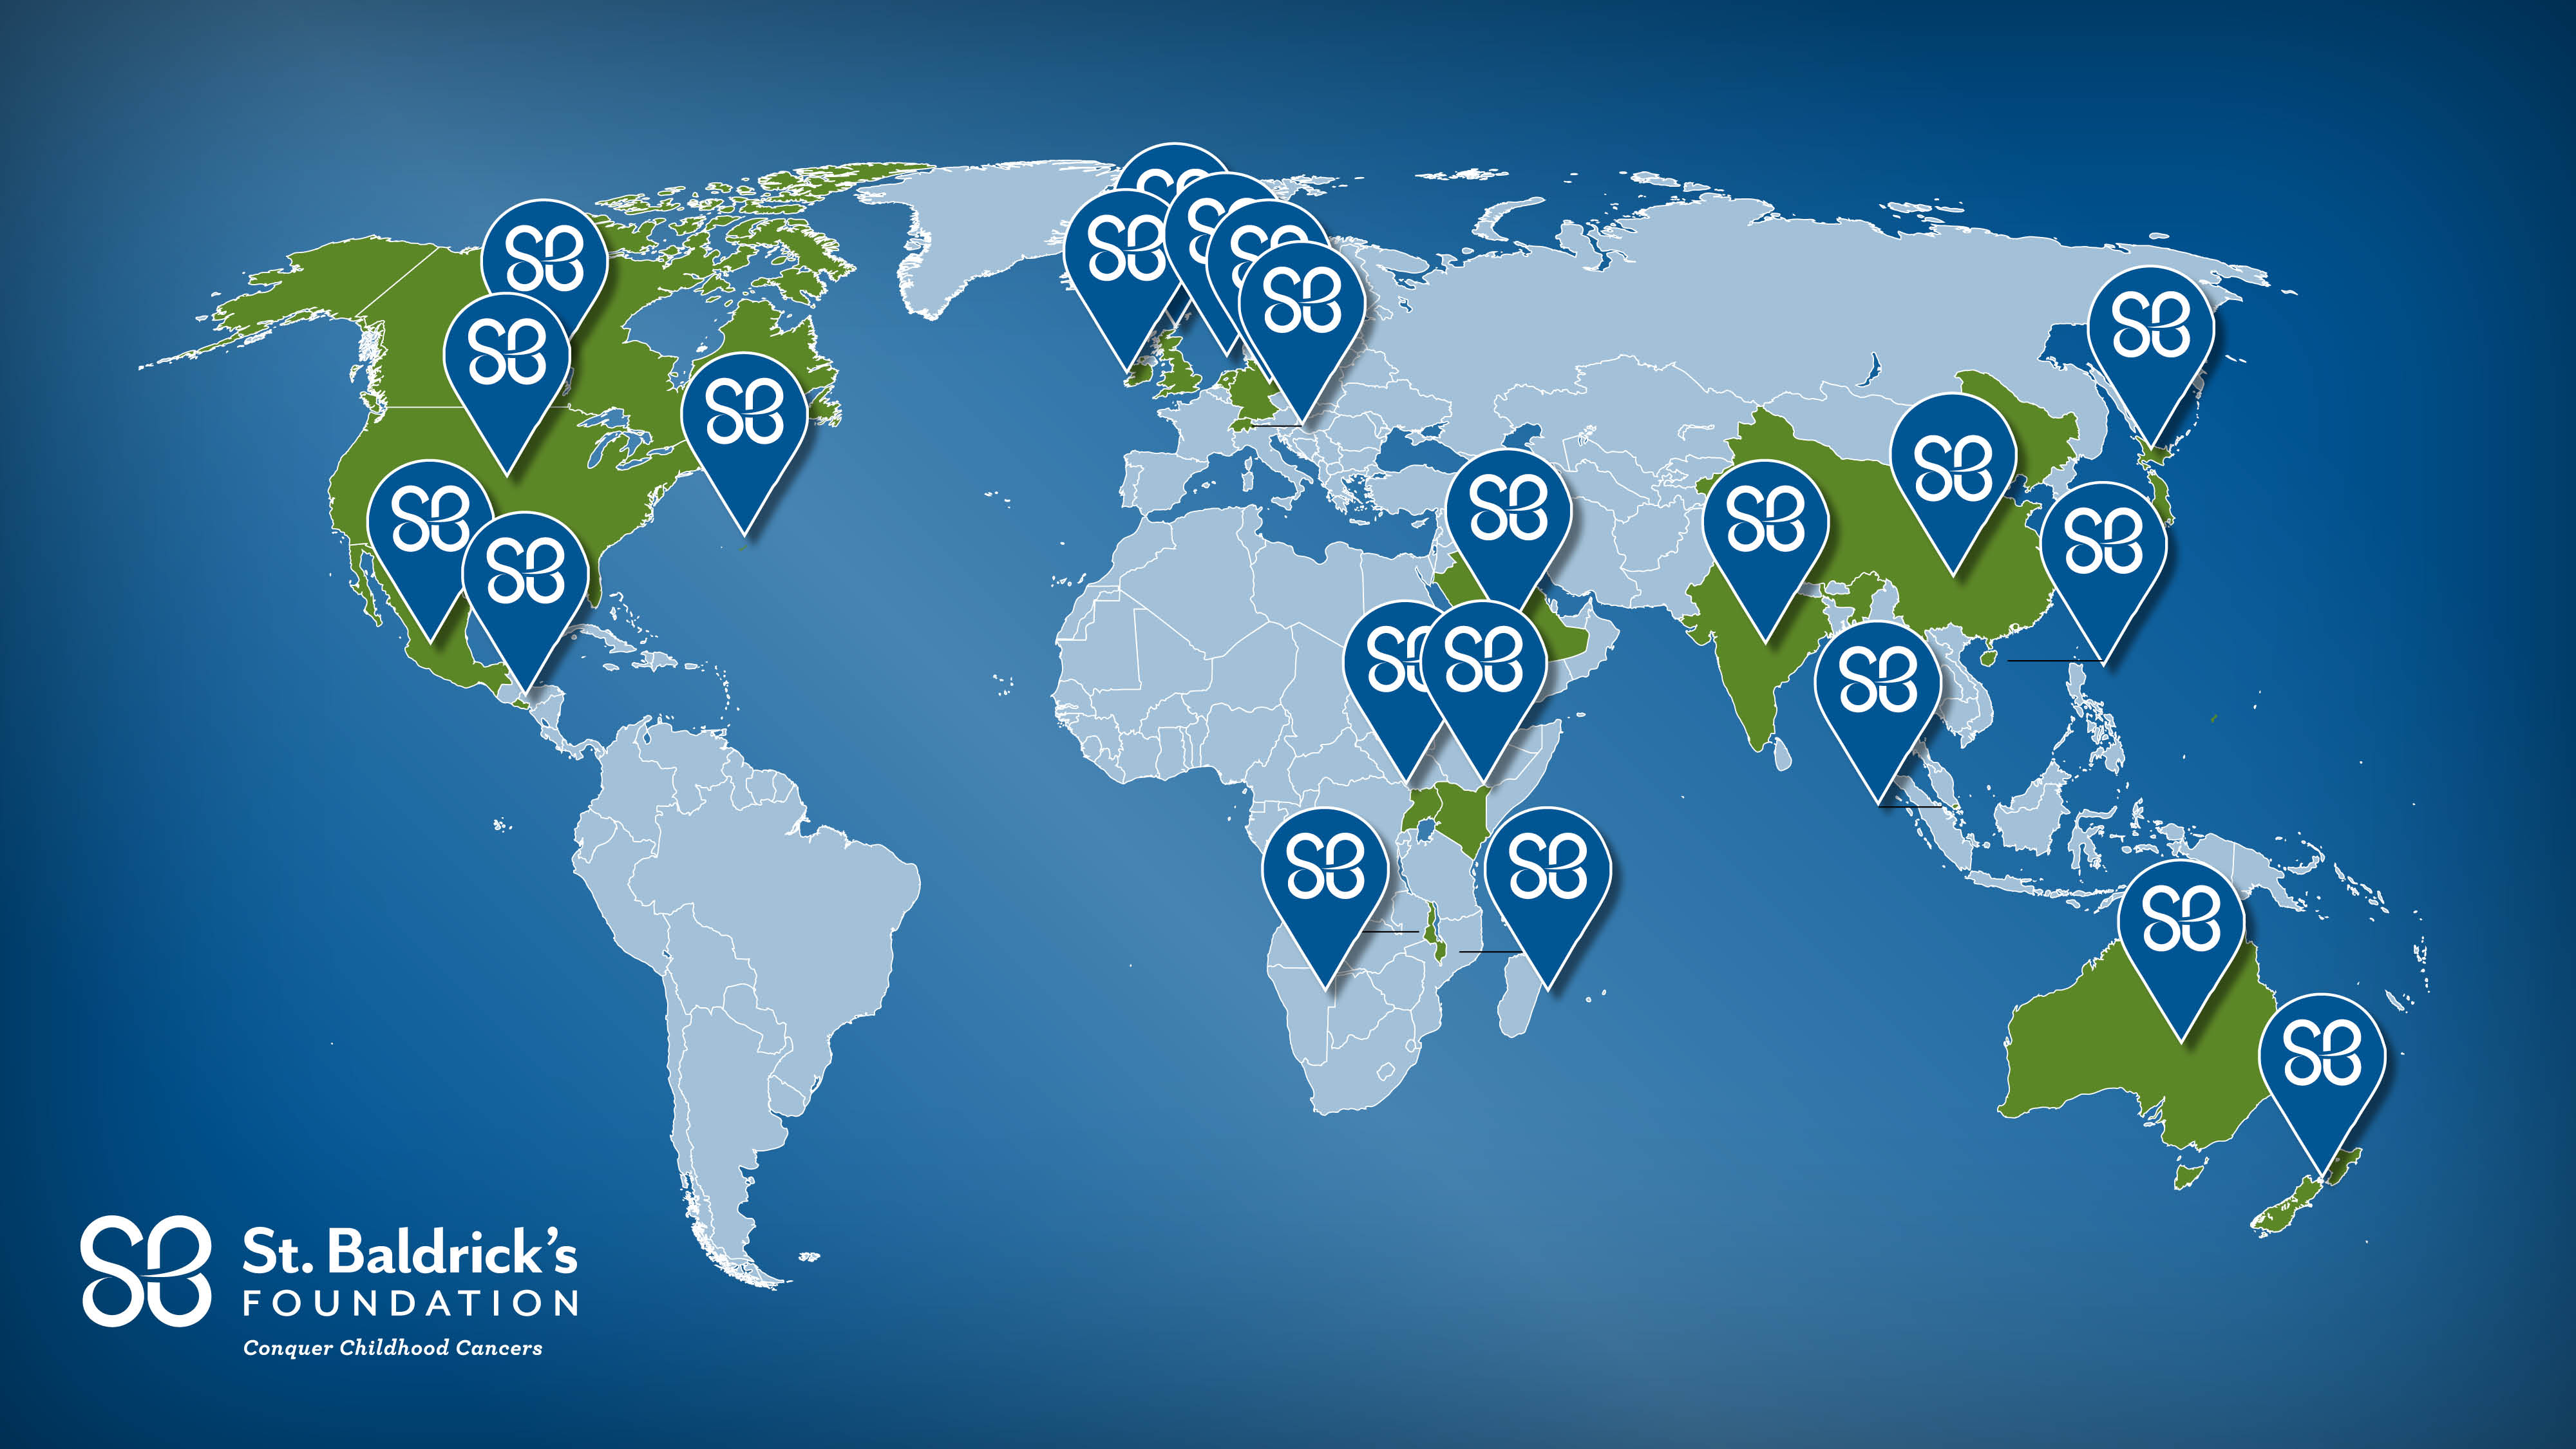 Global map showing St. Baldrick's research activity around the world.